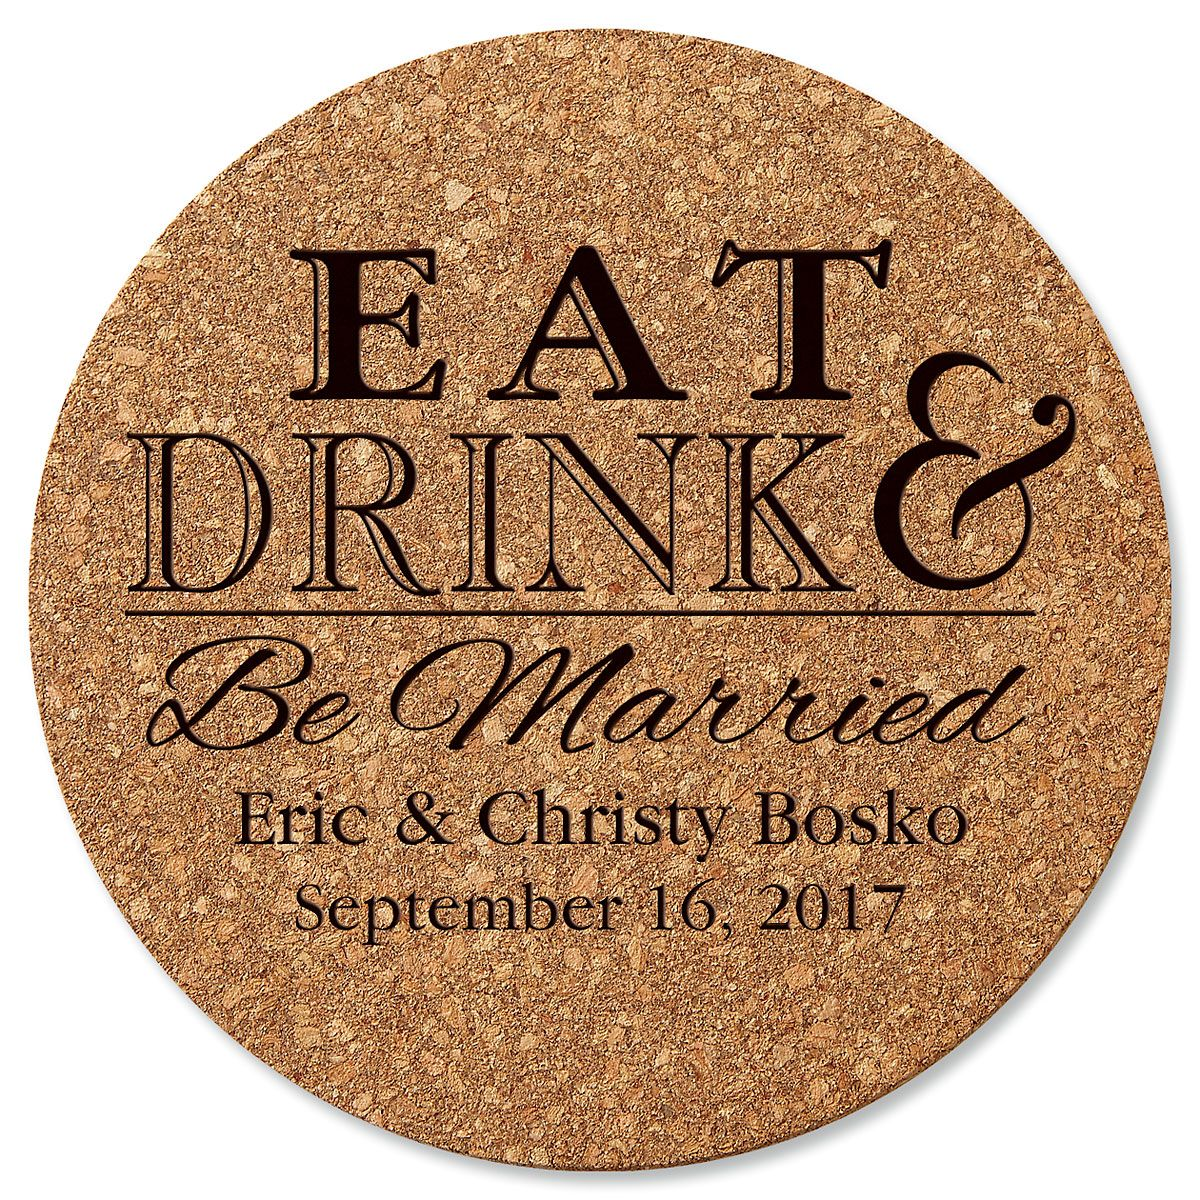 Personalized Eat, Drink, and Be Married Round Cork Trivet by Designer Jillian Yee-Pham